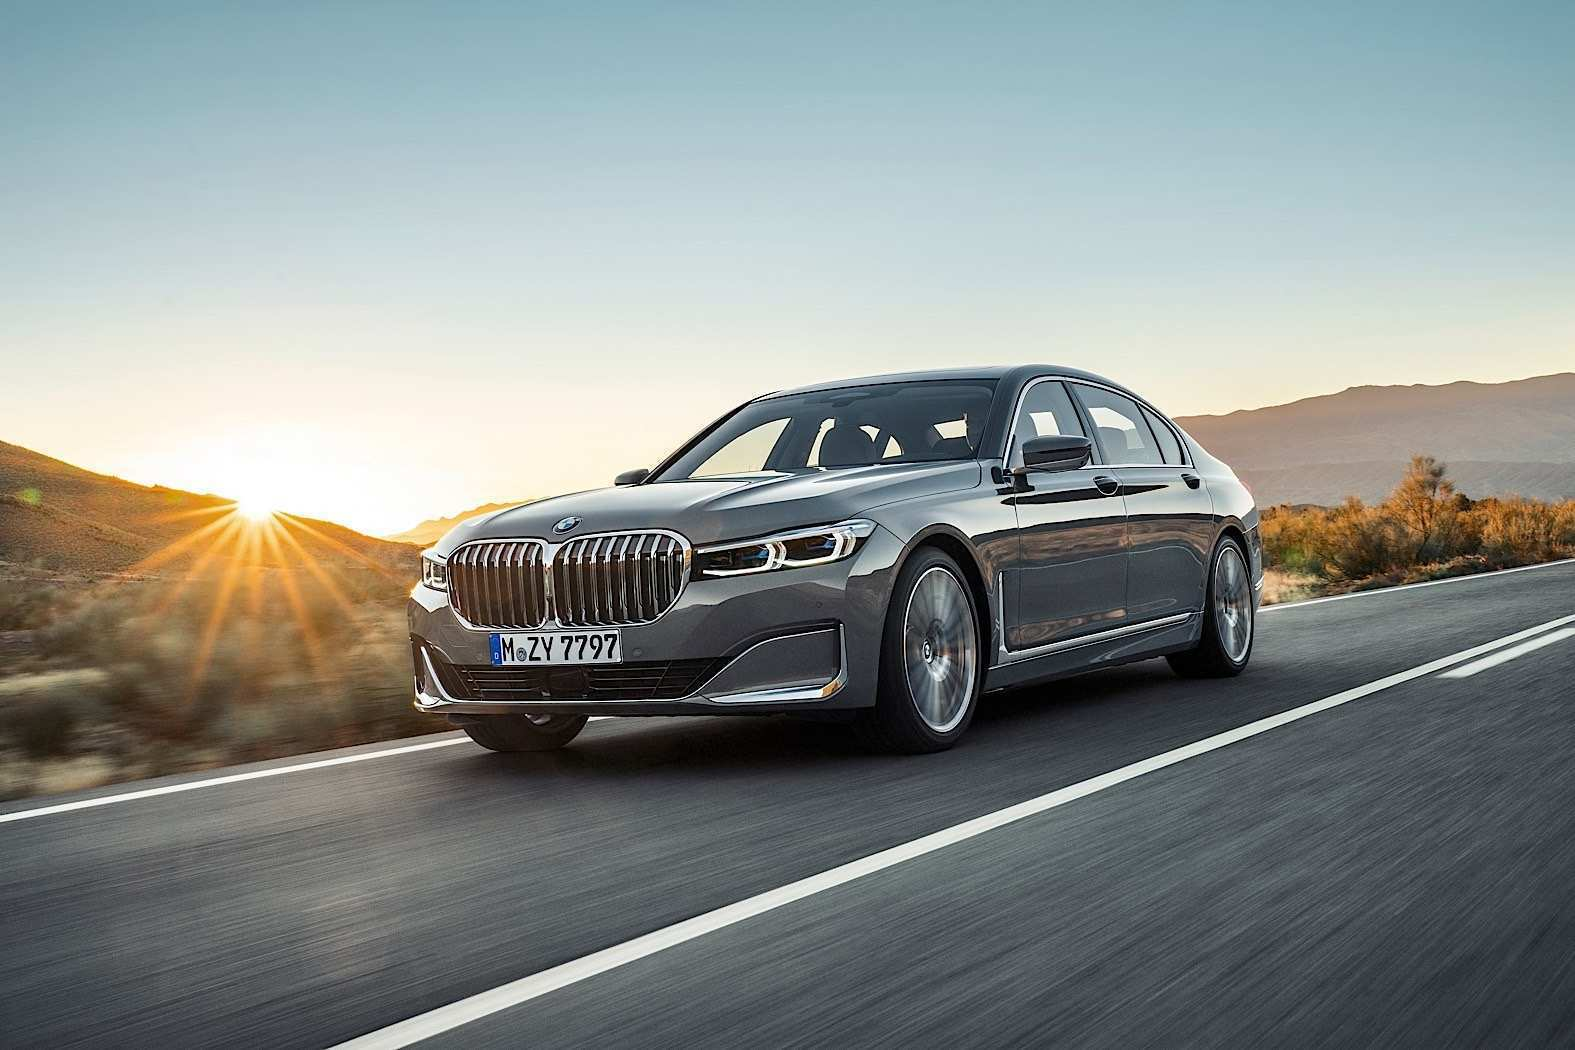 79 A BMW 5 Series Lci 2020 Pictures